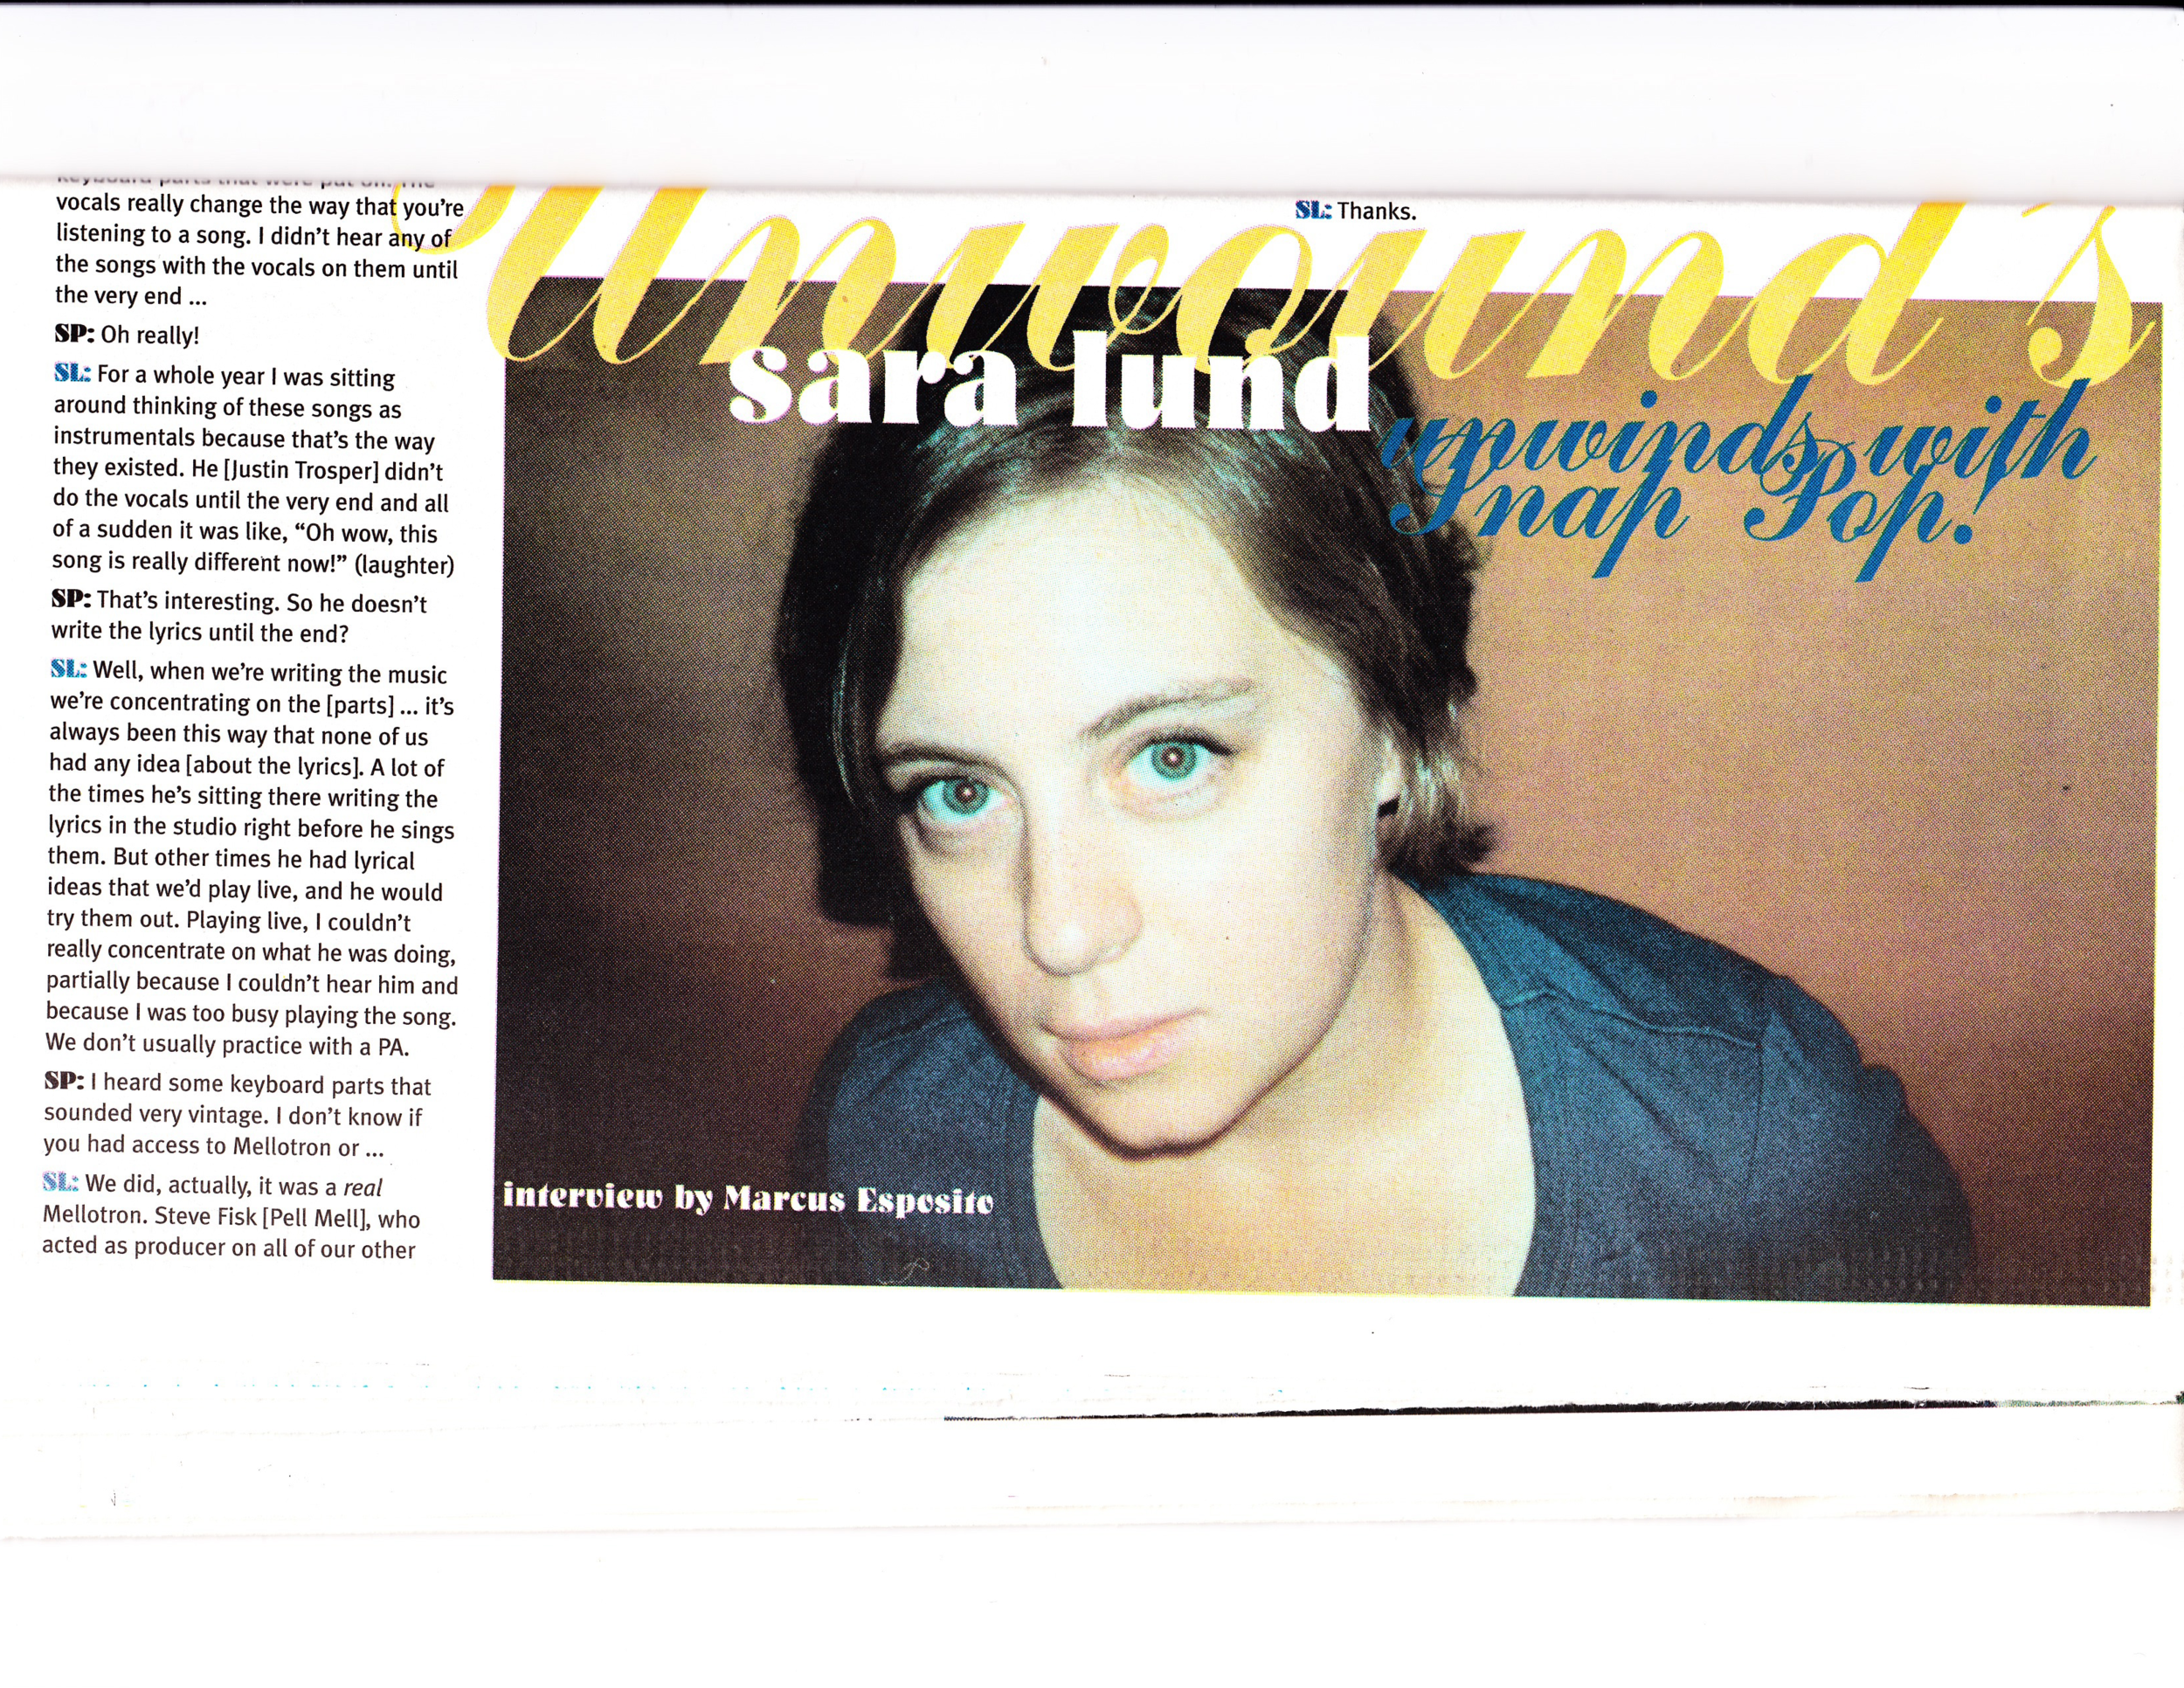 Snap Pop! Sept/Oct 2001 interview with Sara Lund p.2